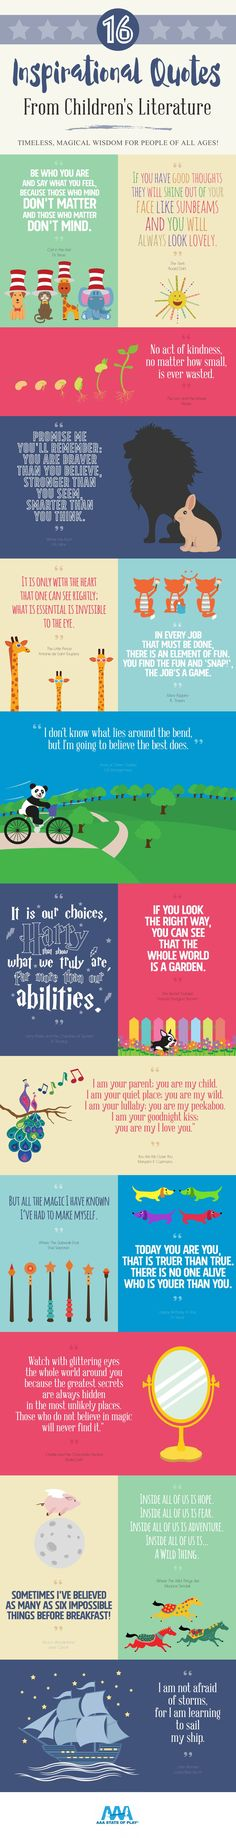 16 Inspirational Quotes from Children's Literature [by AAA State of Play -- via #tipsographic]. More at tipsographic.com